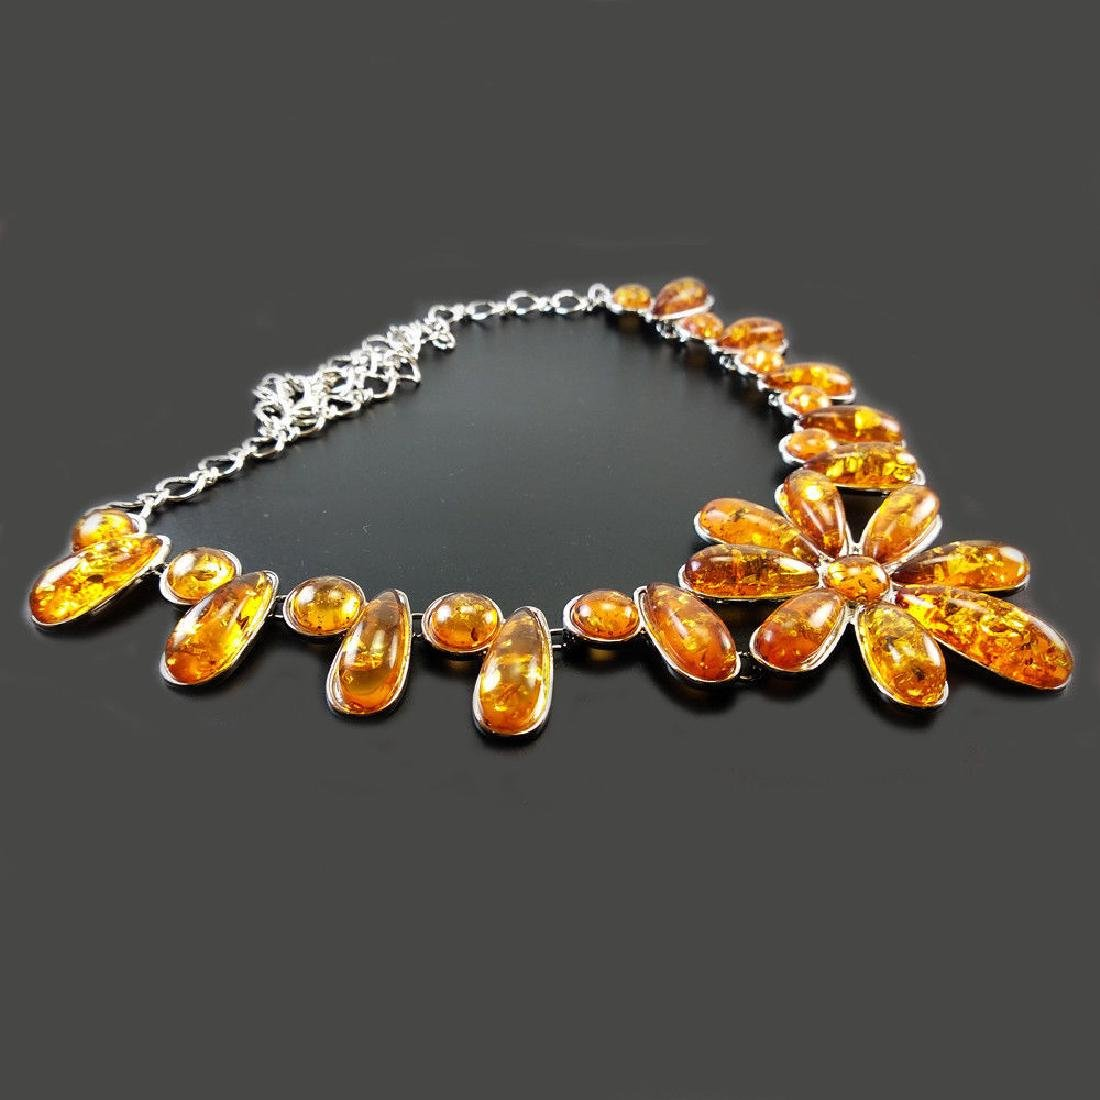 BALTIC AMBER GEMSTONE SILVER PLATED HANDMADE NECKLACE - 3